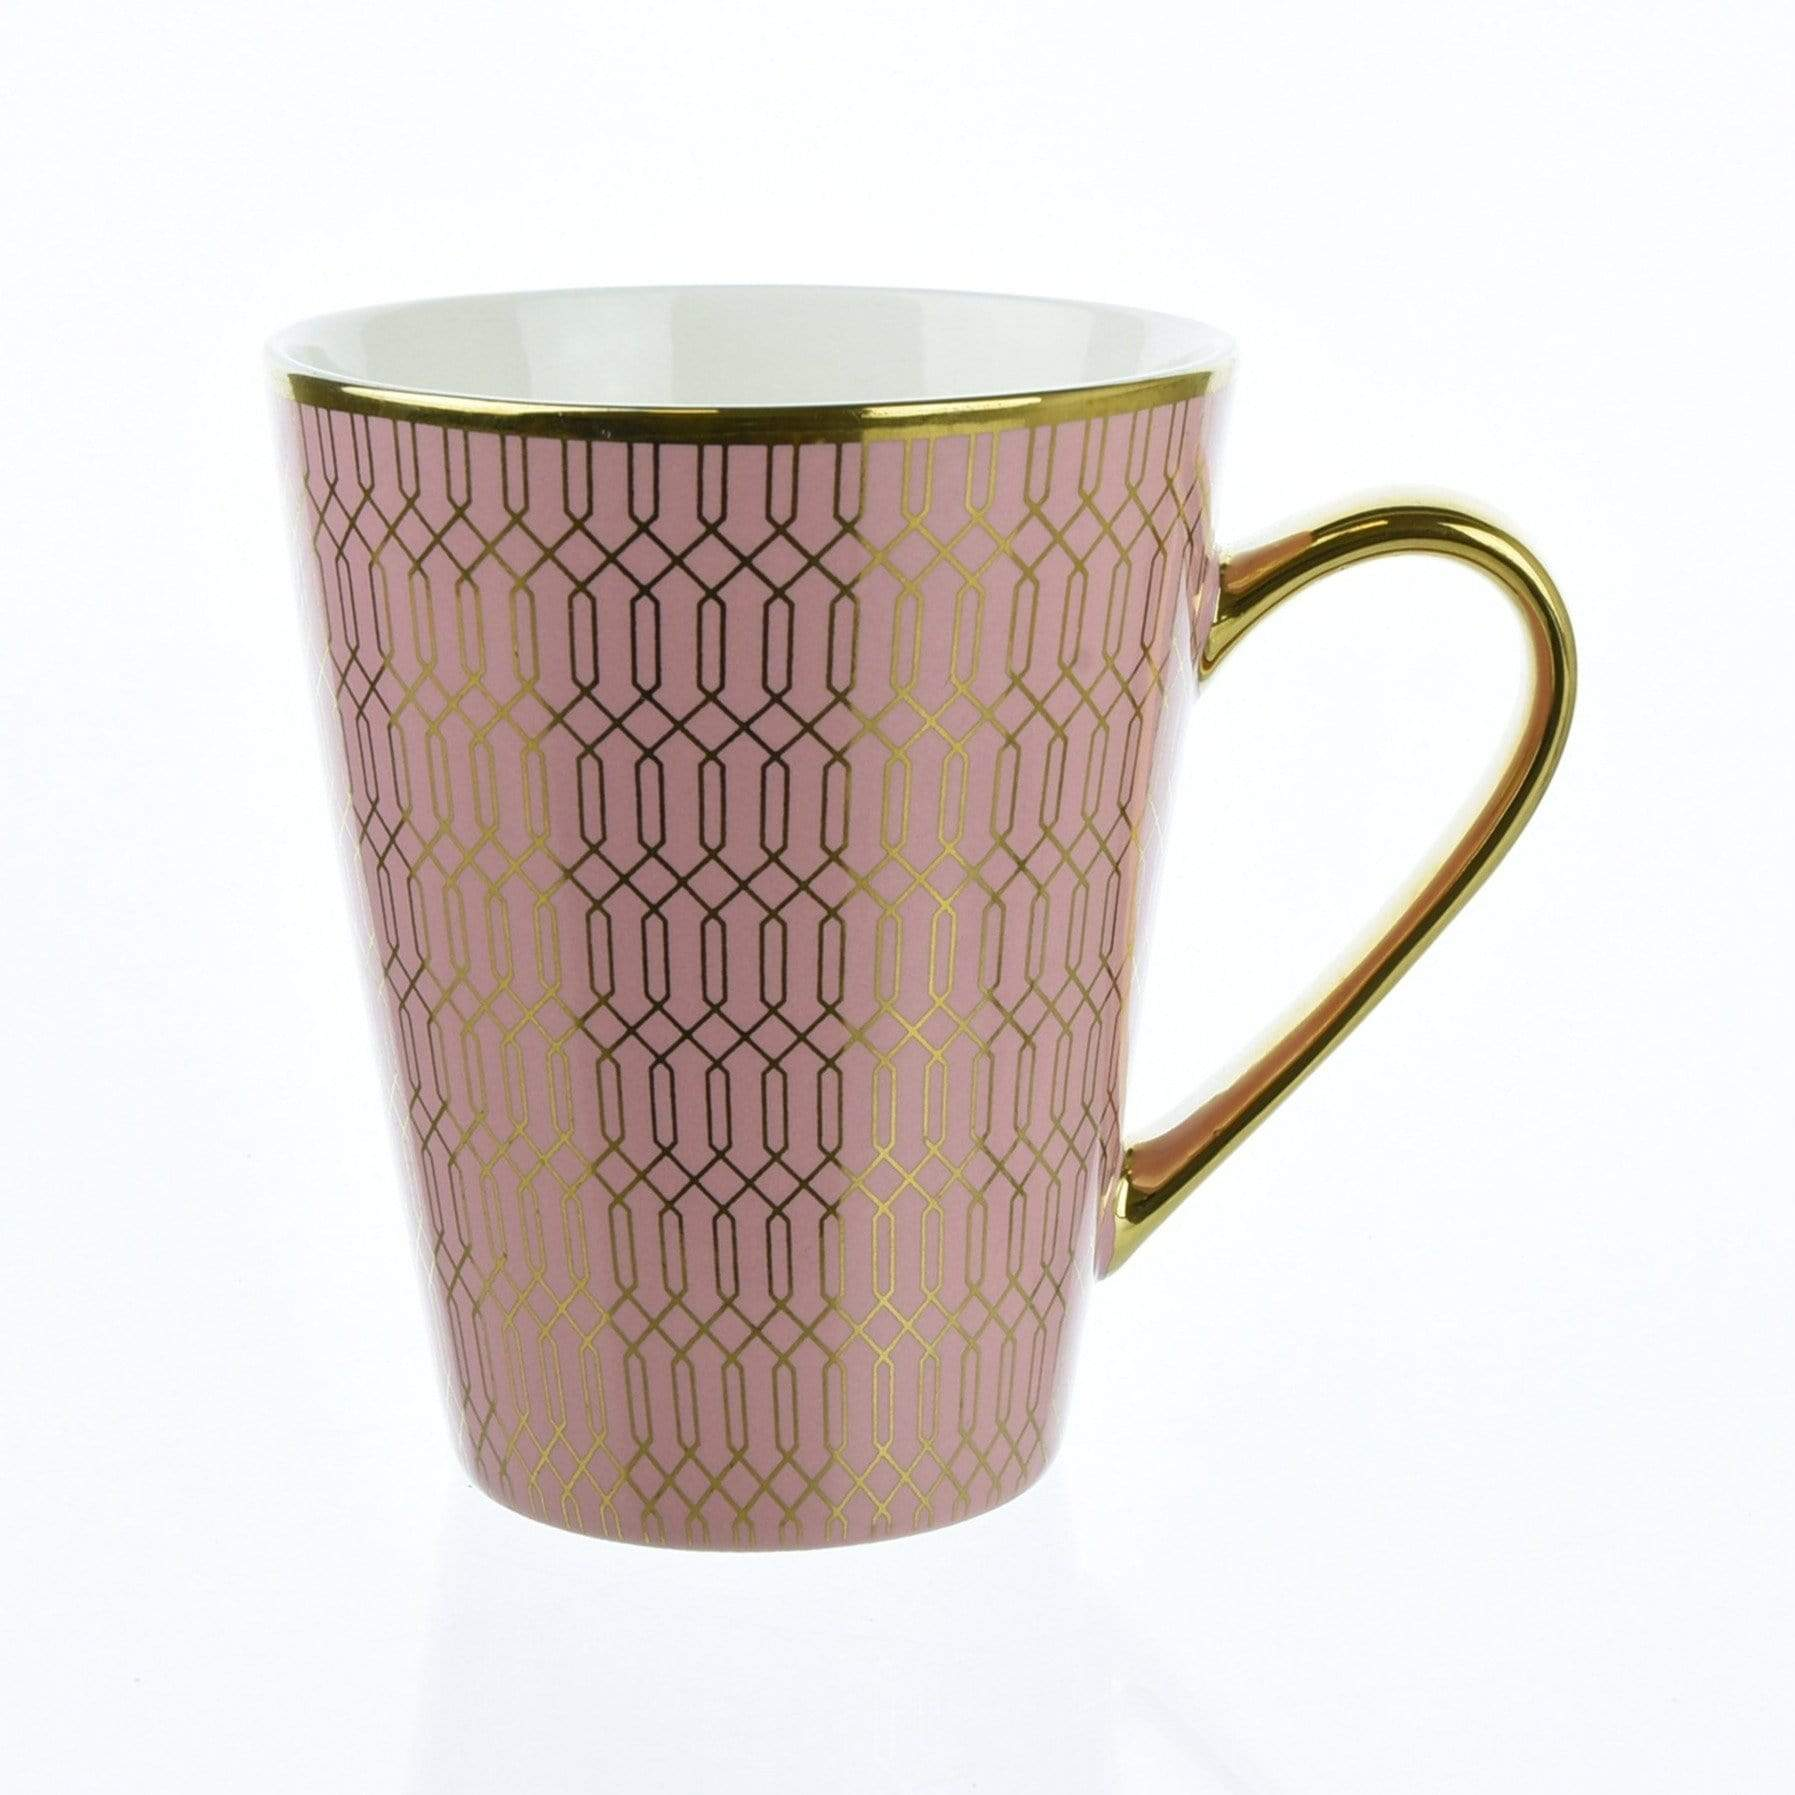 Conical Mug with Geometric Design Pink and Gold 6PK